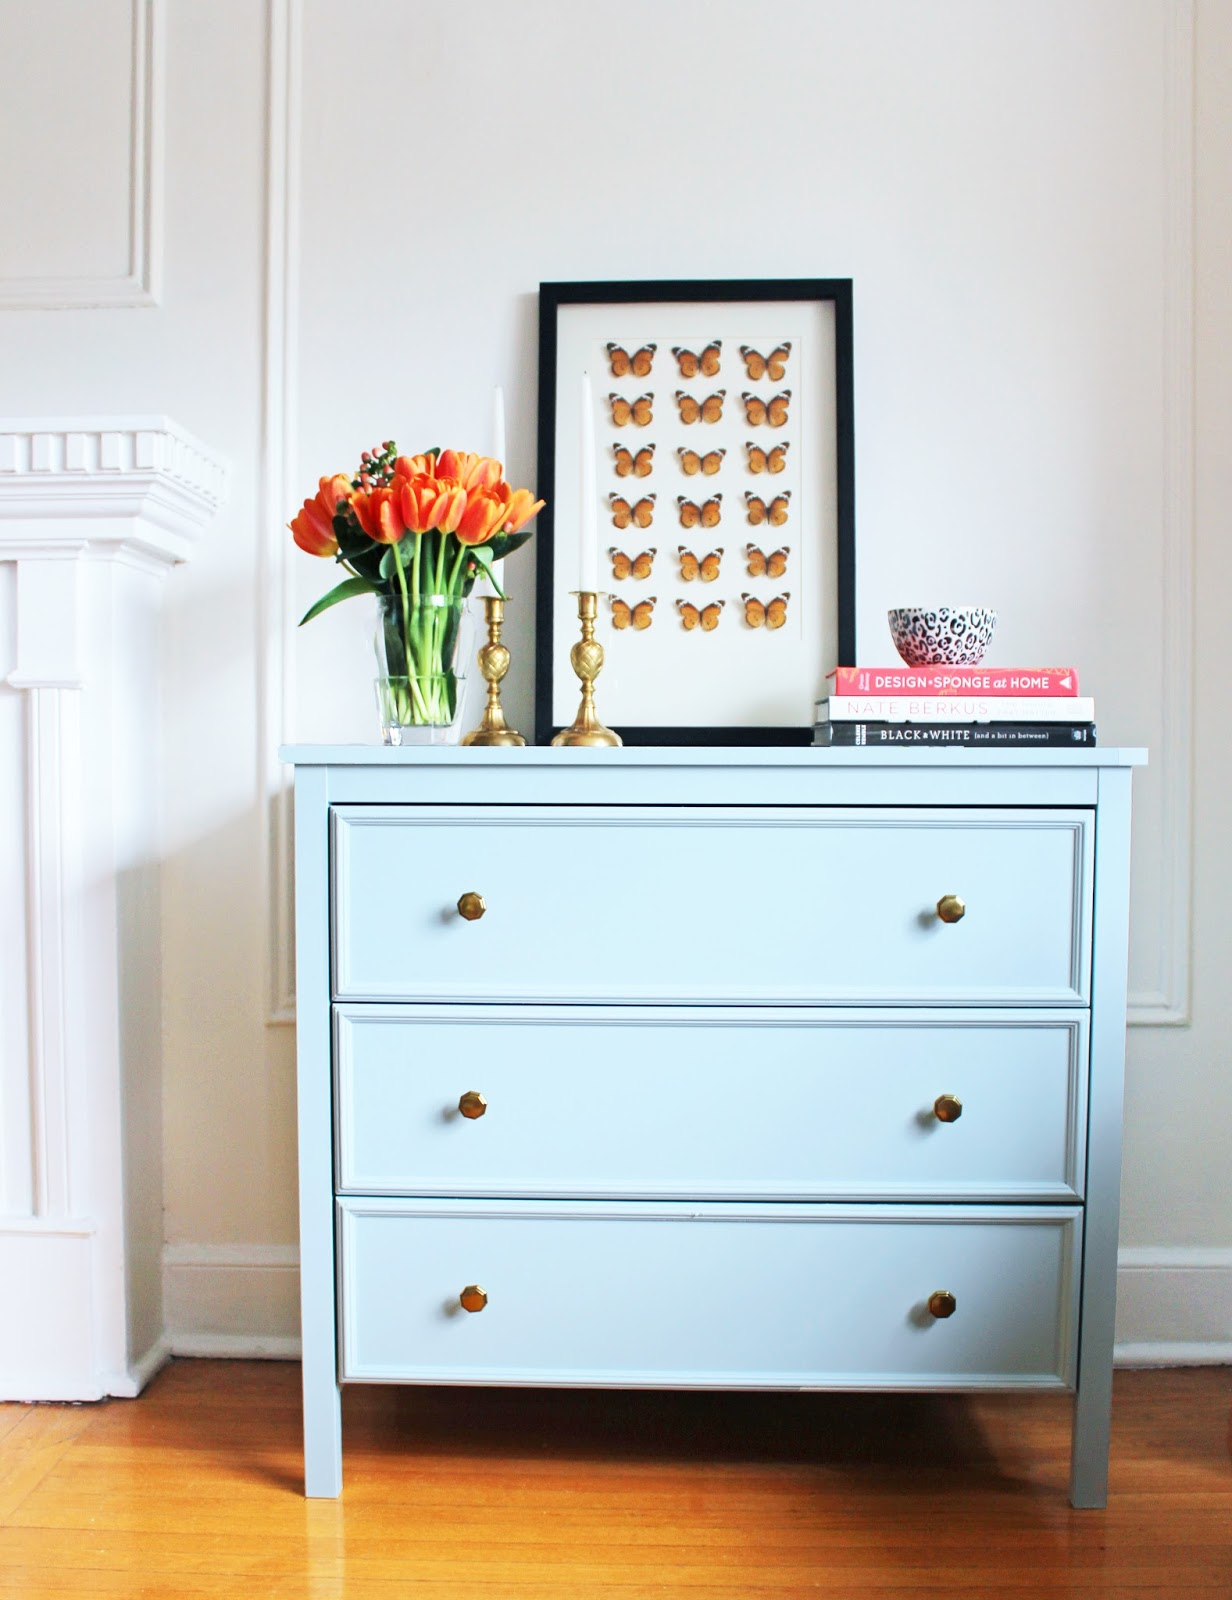 Tiffany leigh interior design diy ikea hack chest of drawers for Ikea bedroom furniture dressers